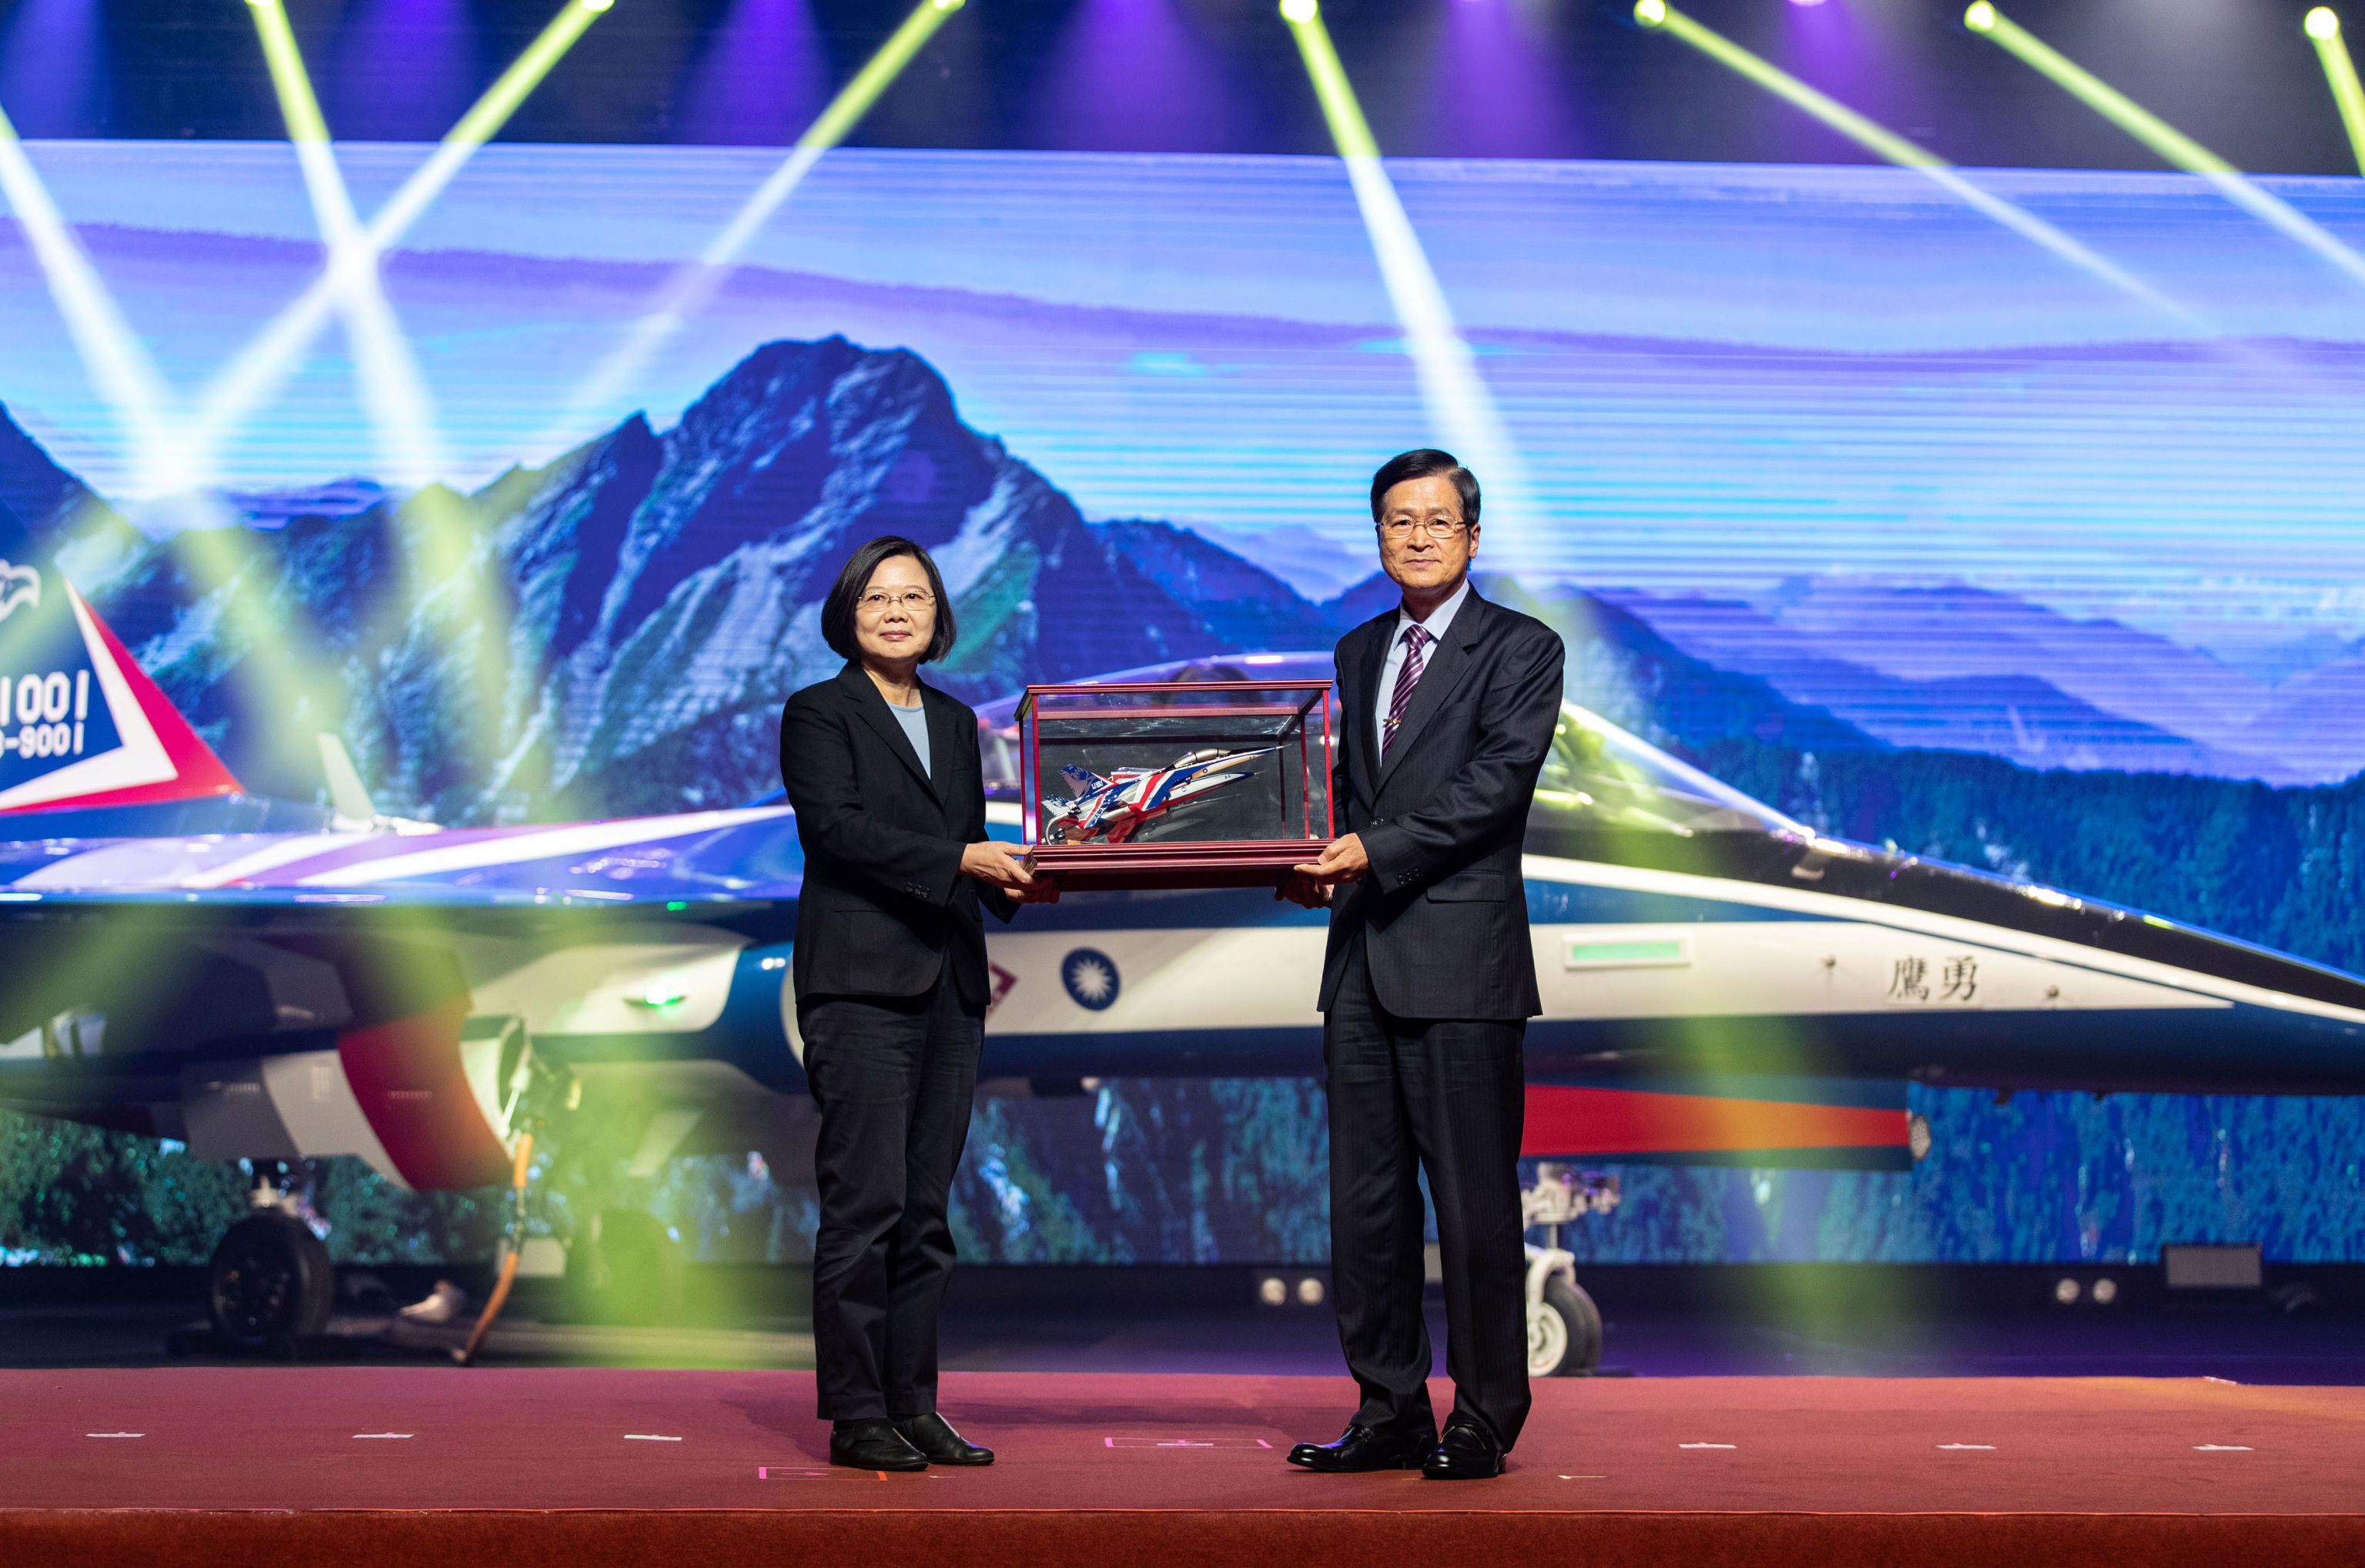 Taiwan's President Tsai Ing-wen attends an unveiling ceremony for a prototype of advanced jet trainer Brave Eagle in Taichung, Taiwan September 24, 2019. Military News Agency/Handout via Reuters.